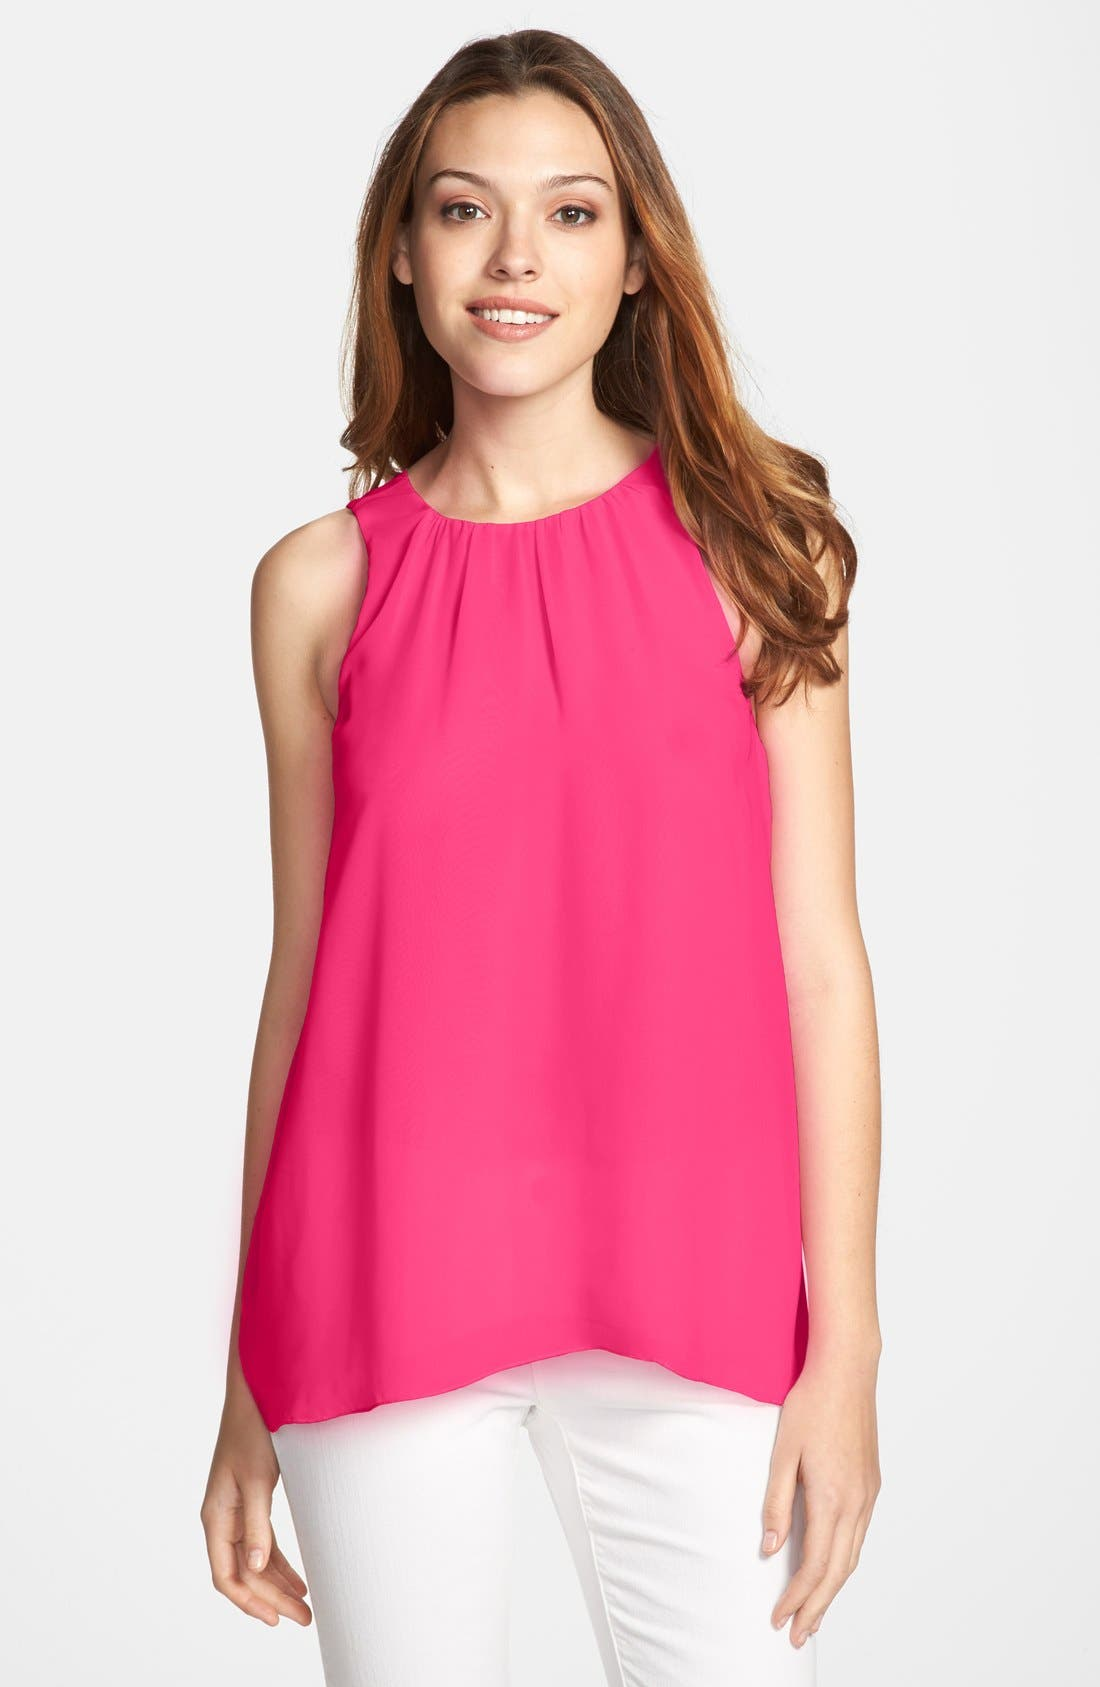 Main Image - Vince Camuto Sleeveless Chiffon Blouse (Regular & Petite)